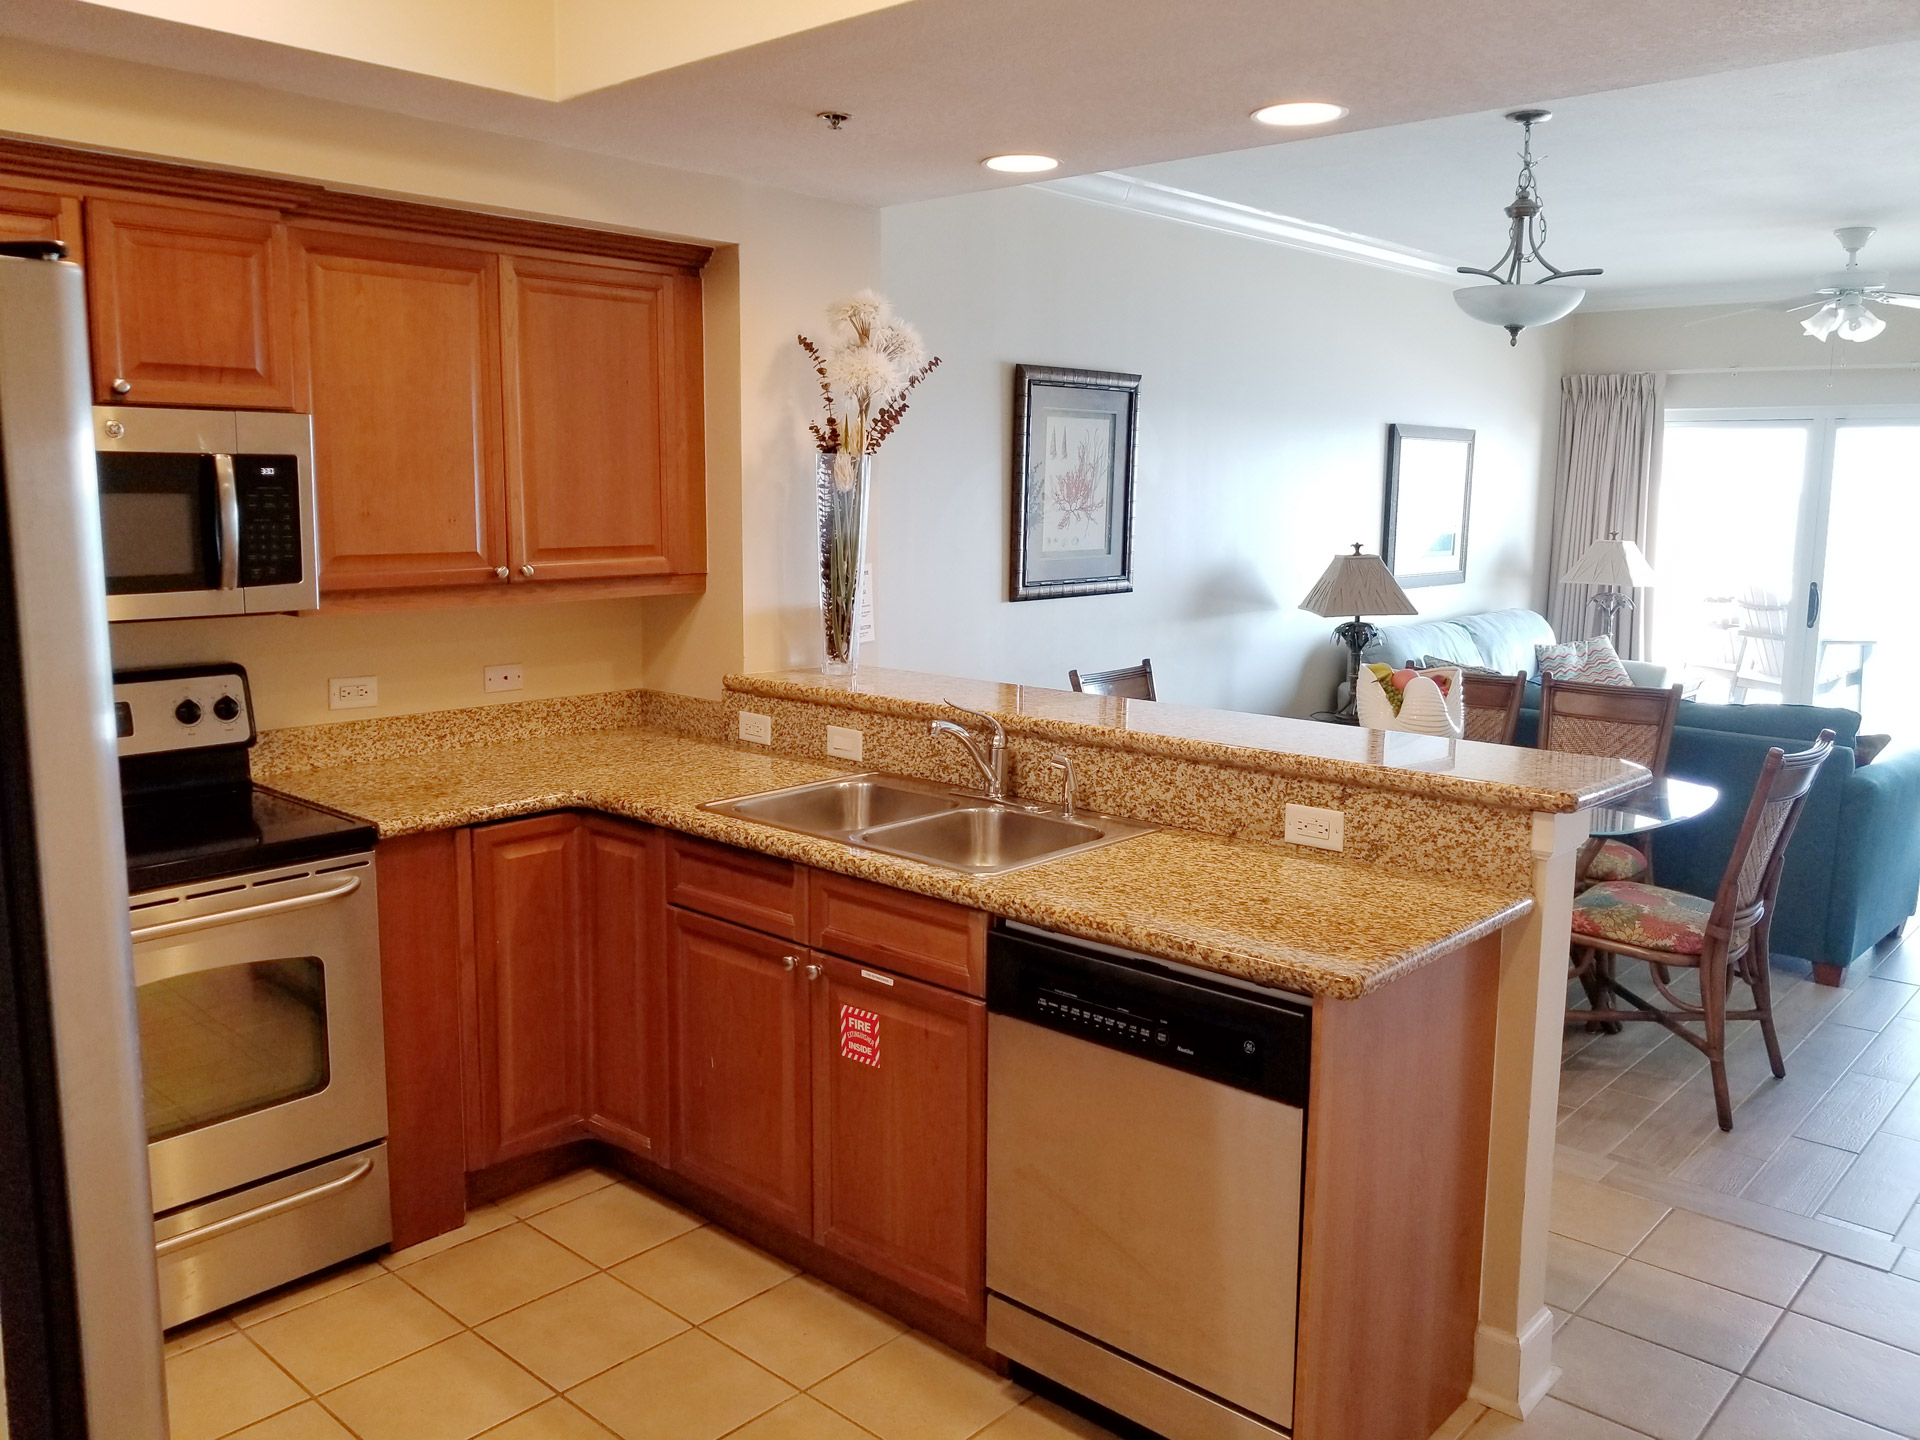 Kitchen at Gulf Shores Condo Rental